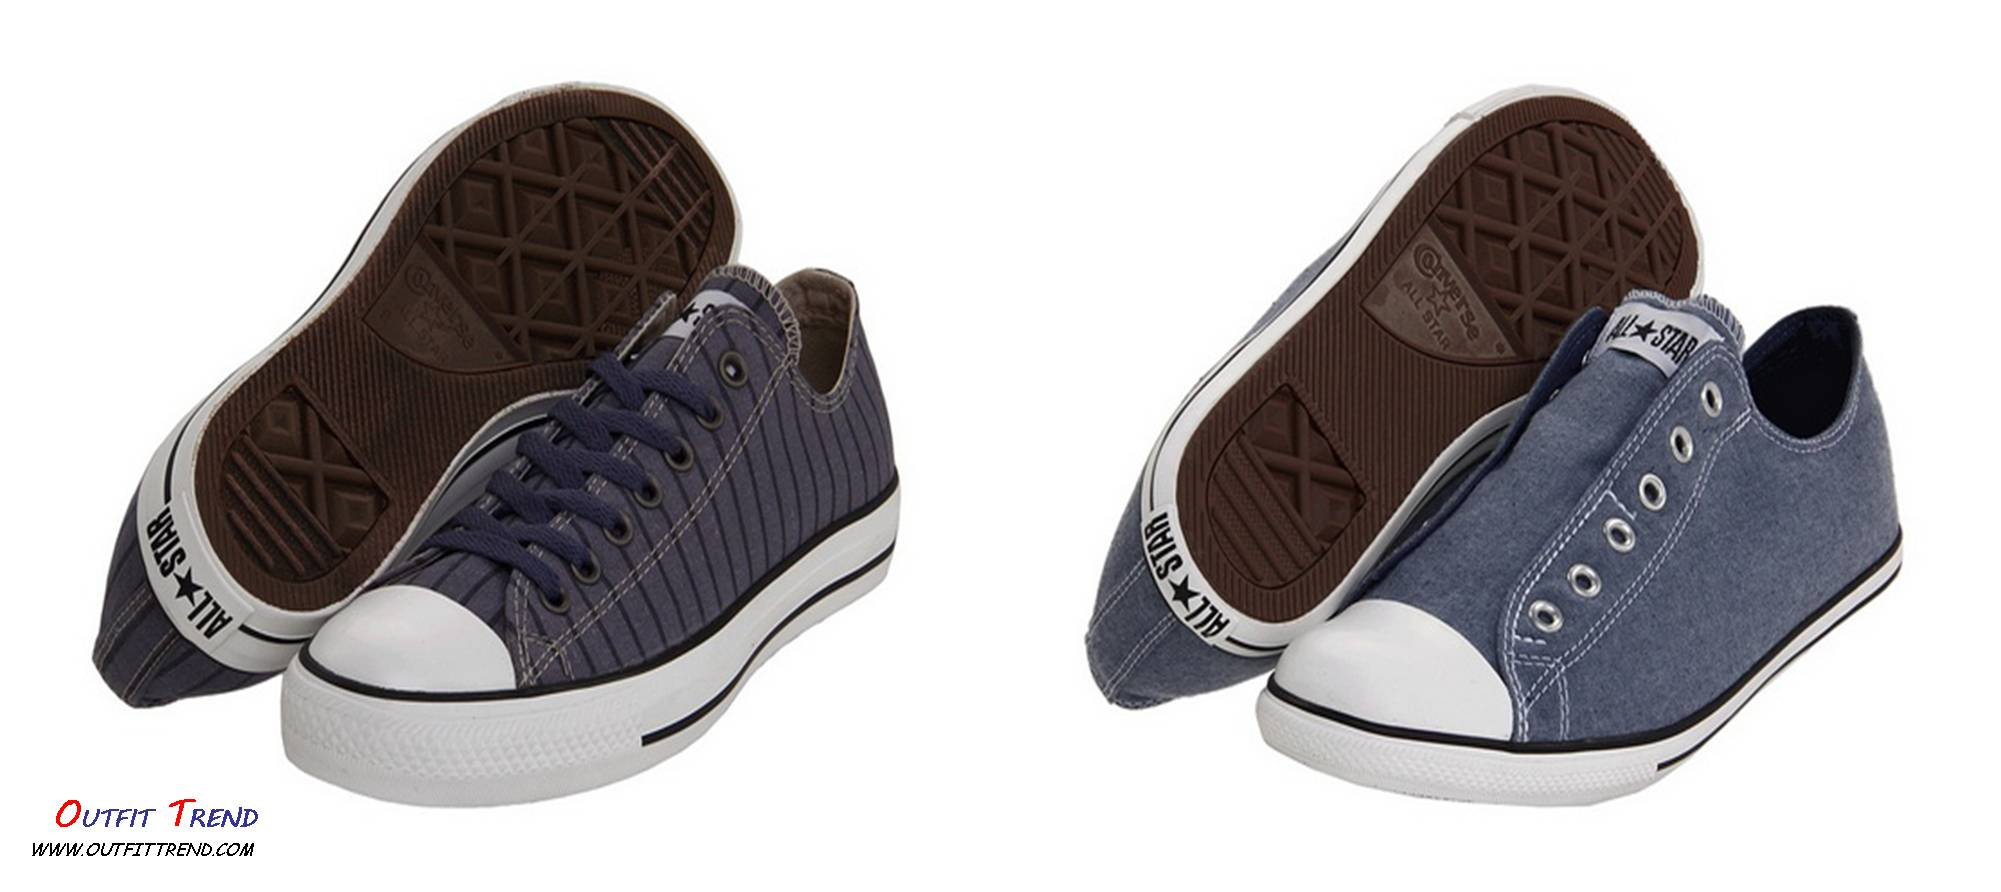 Trendy-Converse-Shoes Trendy Converse Chuck Taylor All Stars For Men Collection